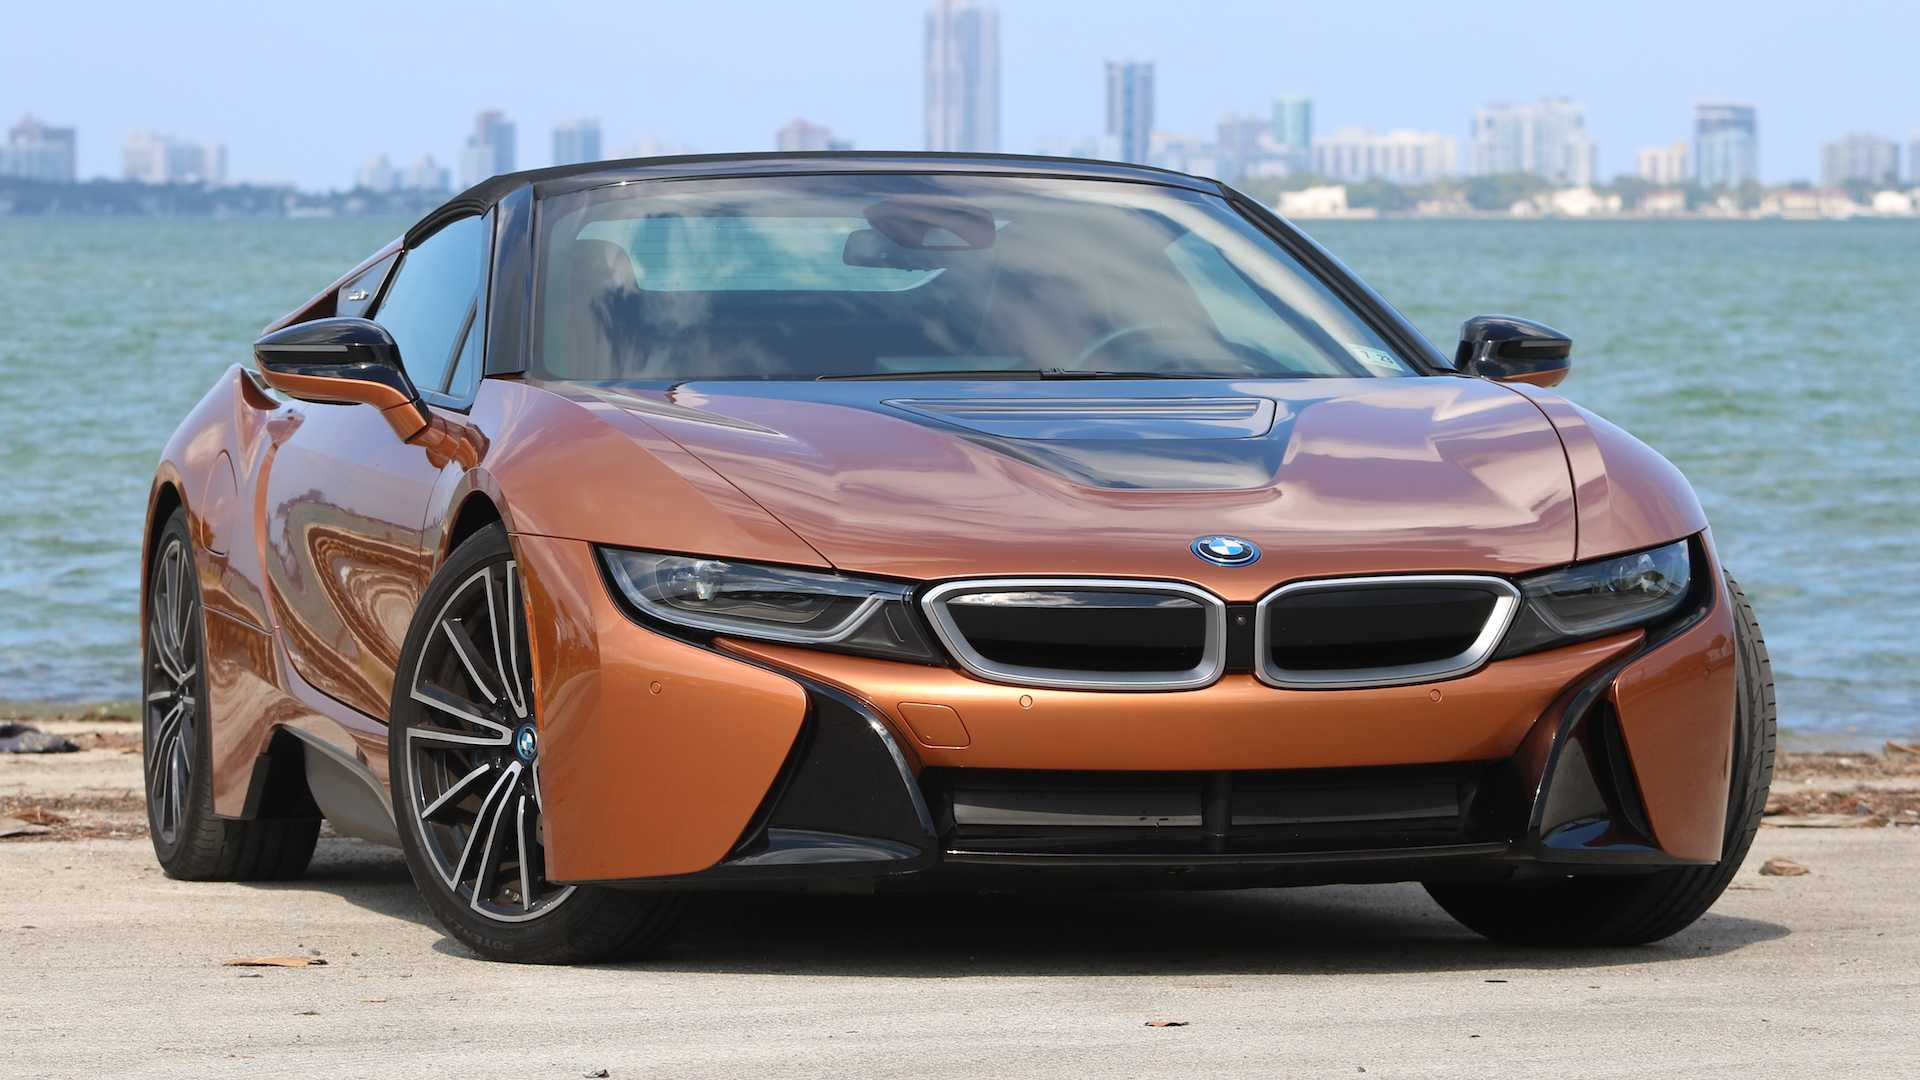 99 The Best 2019 Bmw I8 Roadster Style